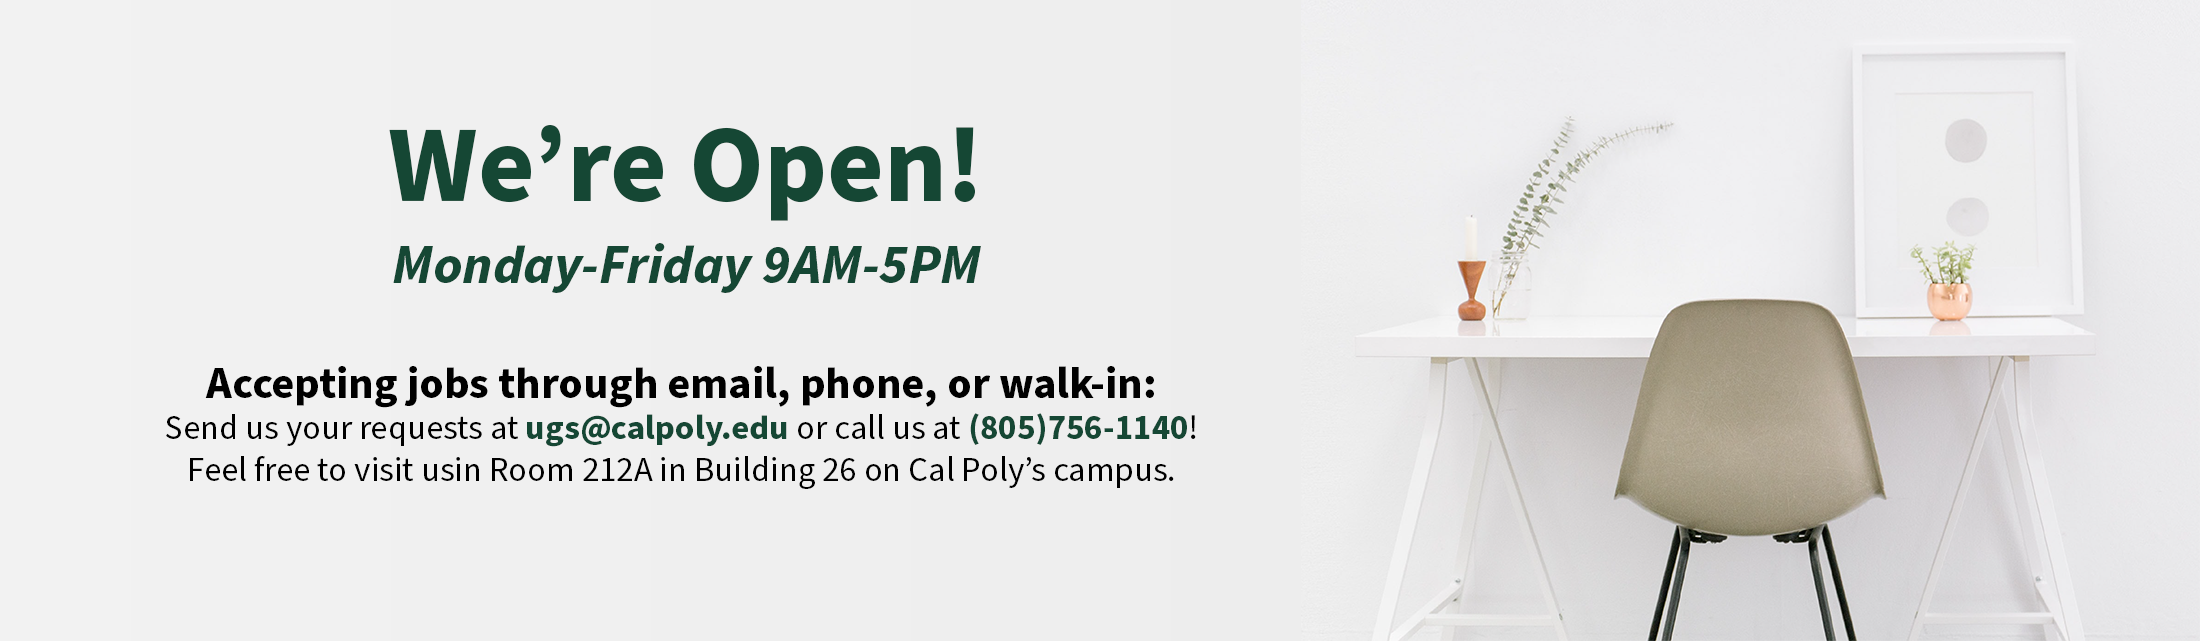 We're open! Monday through Friday 10 AM to 4 PM. Accepting jobs through phone or email: Send us youre requests at quickprint.ugs@gmail.com for small quantities or ugssales@calpoly.edu for large jobs! Or call us at 805-756-1140.